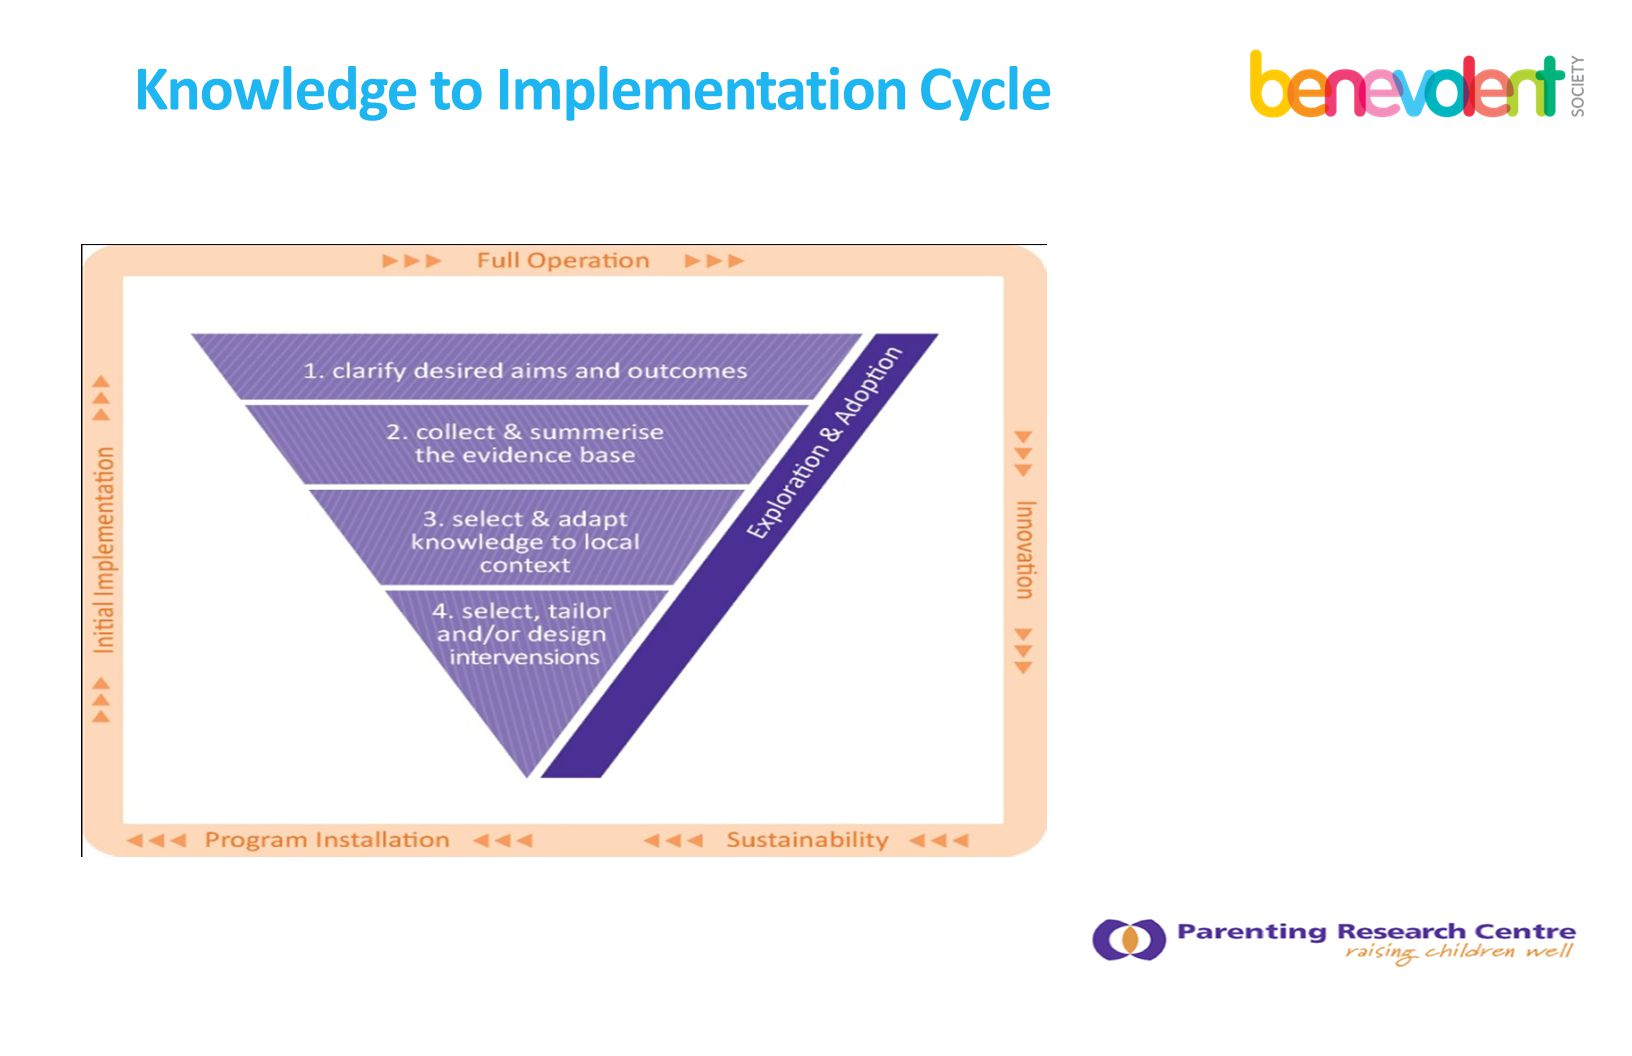 Knowledge to Implementation Cycle